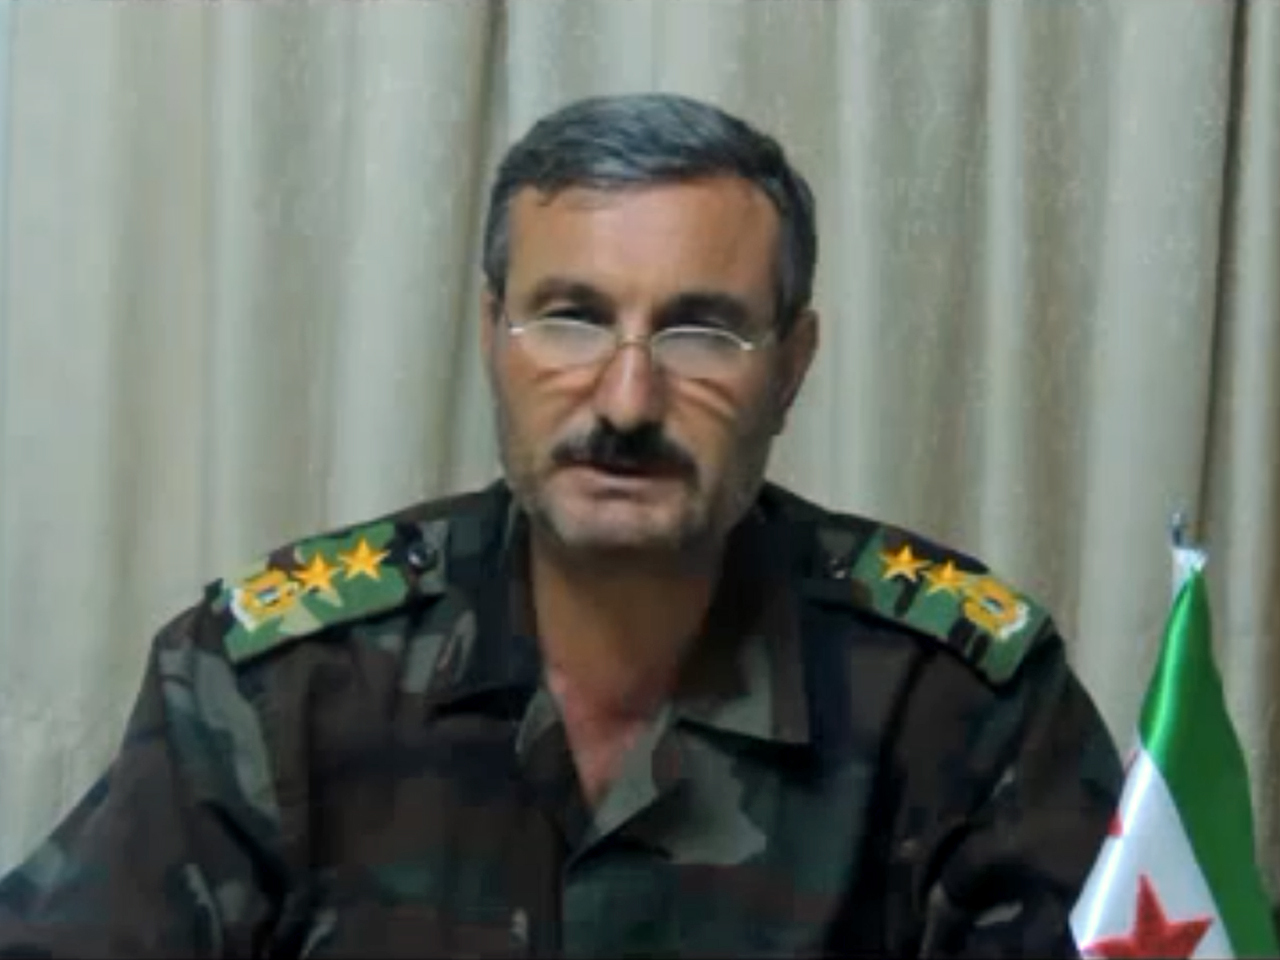 Syria rebel leader Col. Riad al-Asaad wounded in attack ...